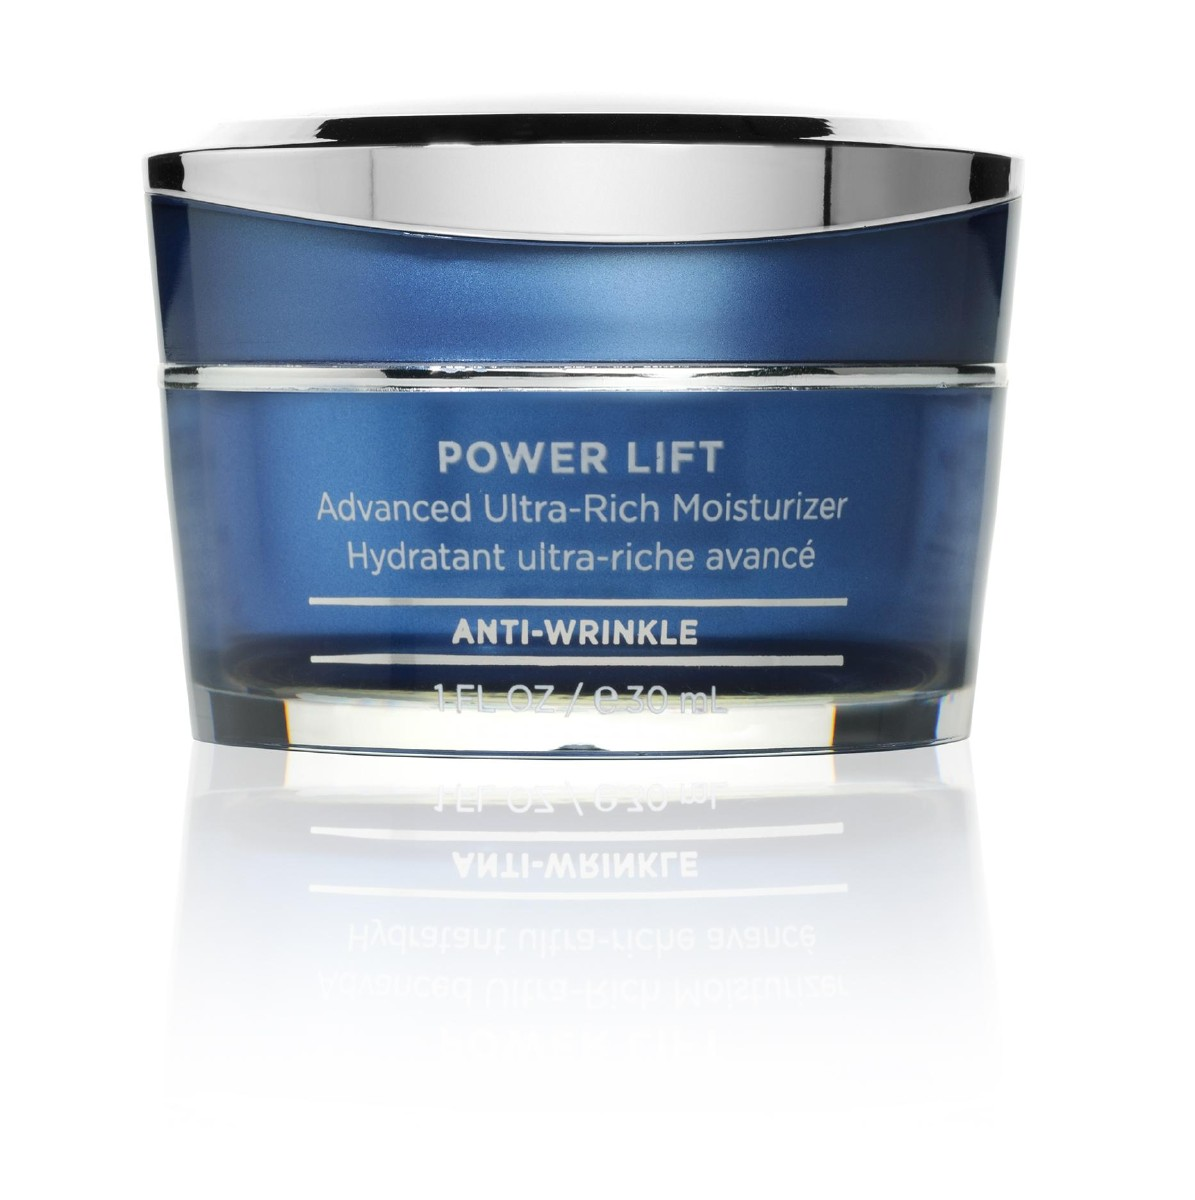 "HydroPeptide is a Washington based, nationally acclaimed anti-aging skincare line. The Bachelorette's Trista Sutter, endorses it saying, ""I use HydroPeptide's Power Serum and Power Lift everyday."" (Photo Credit: HydroPeptide)"